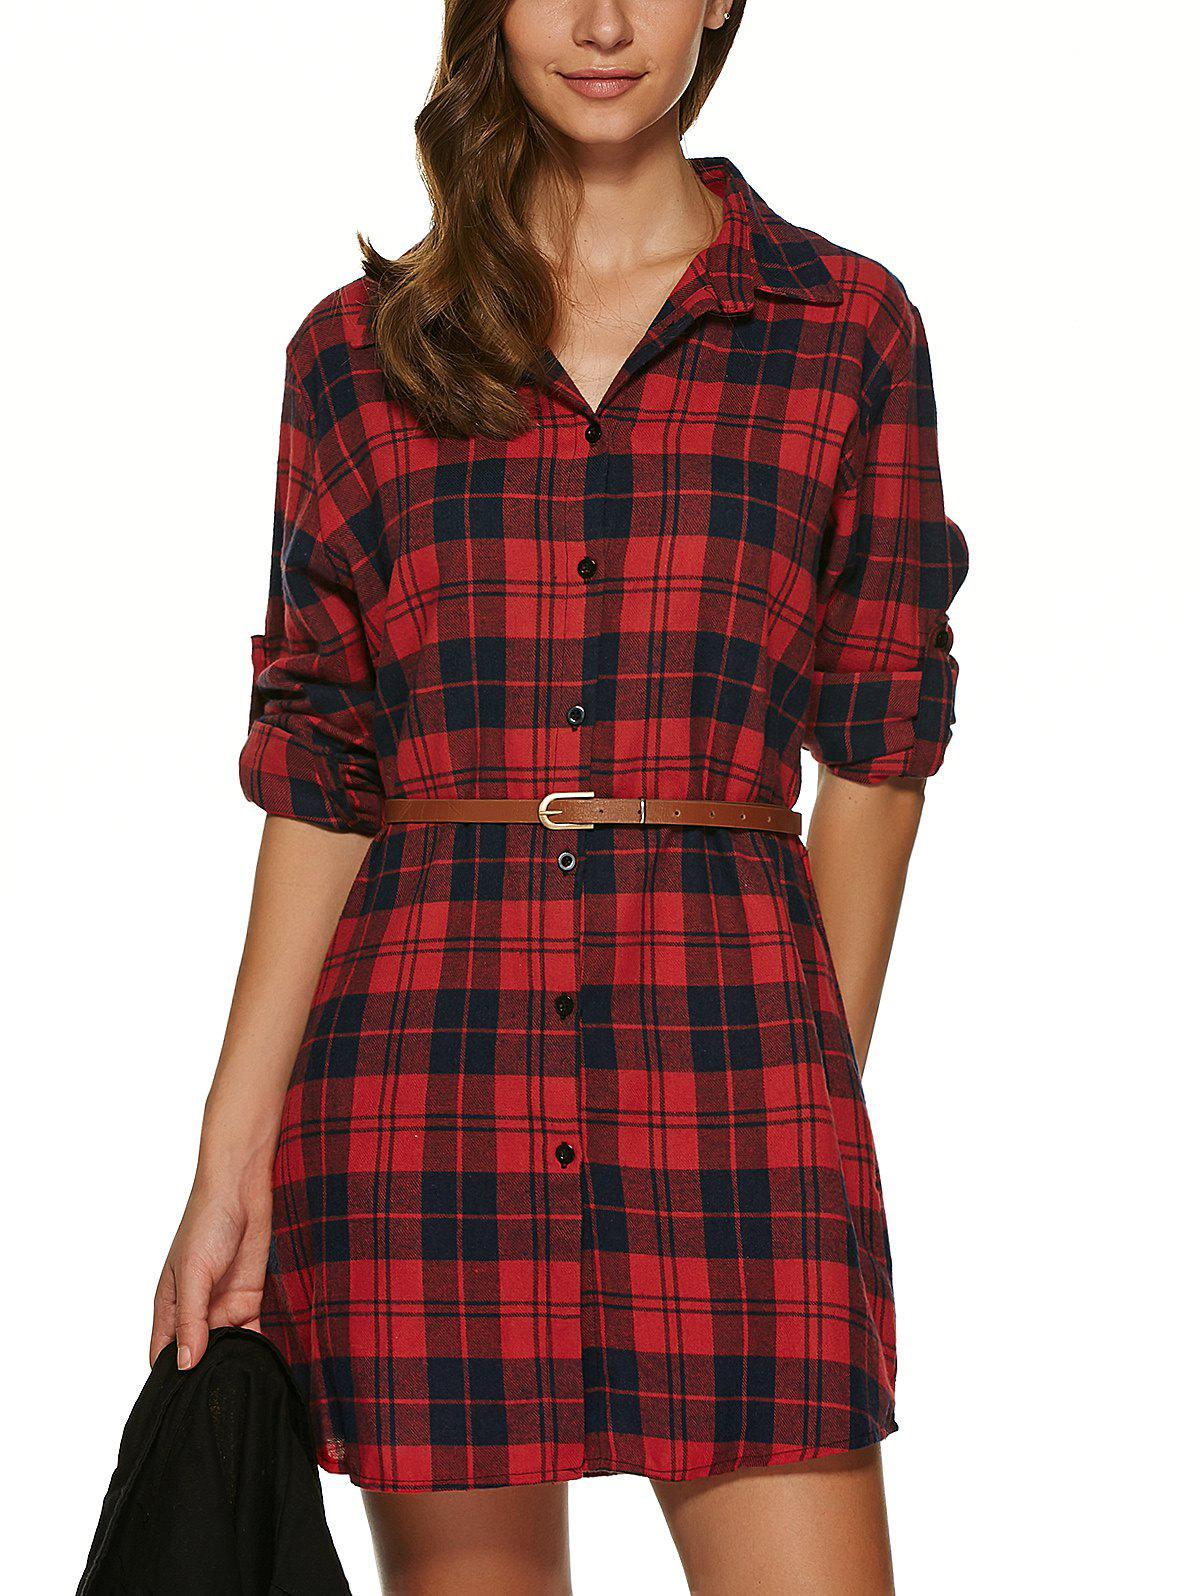 Long Sleeve Plaid Tunic Flannel Shirt Dress - DEEP RED S